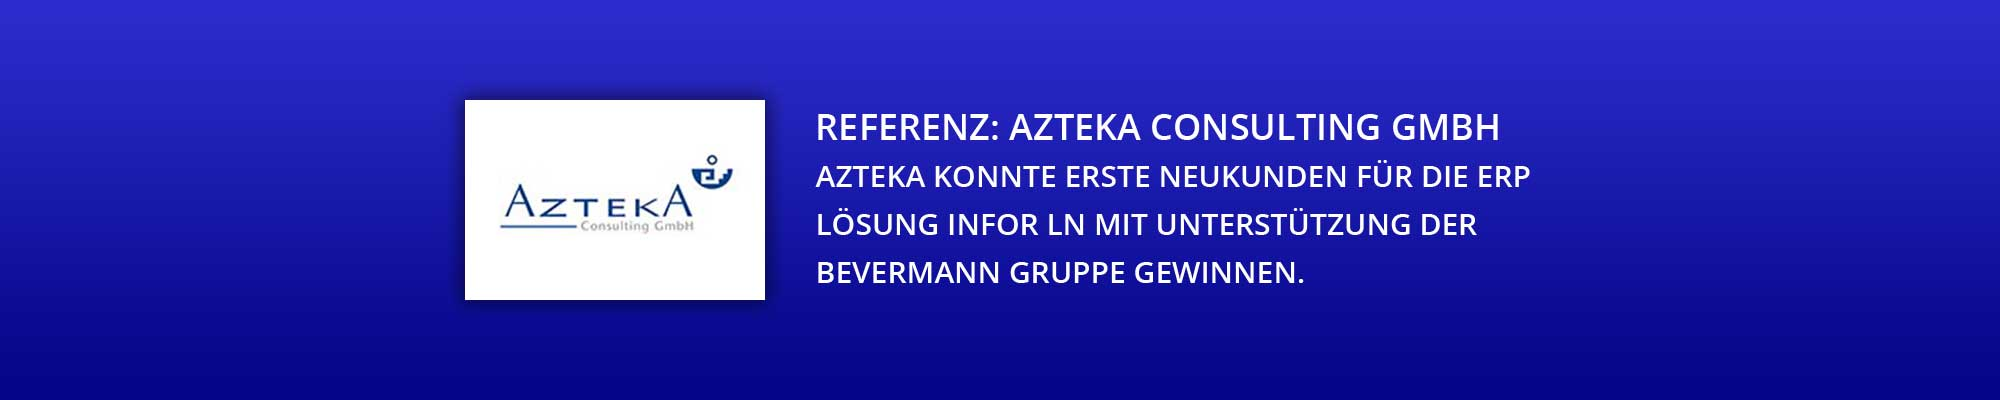 AZTEKA-Consulting-GmbH